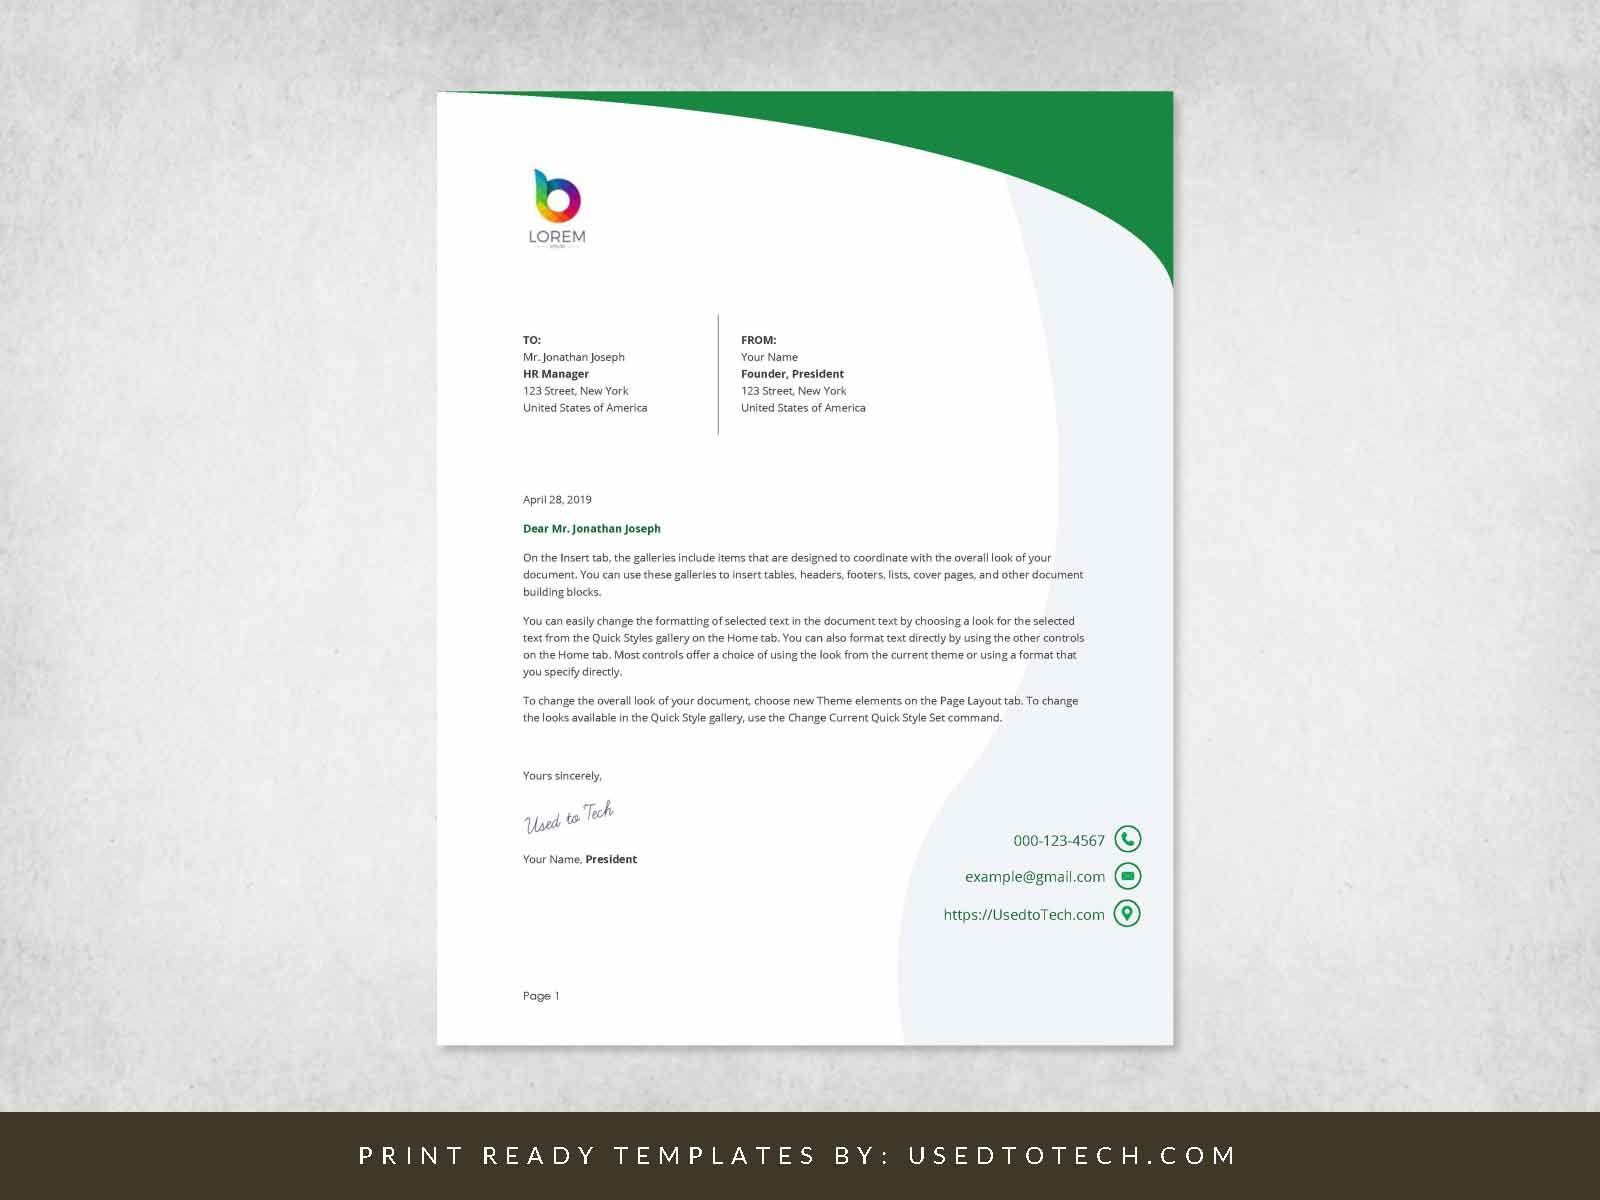 000 Staggering Letterhead Sample In Word Format Free Download Highest Quality  Design Template PsdFull